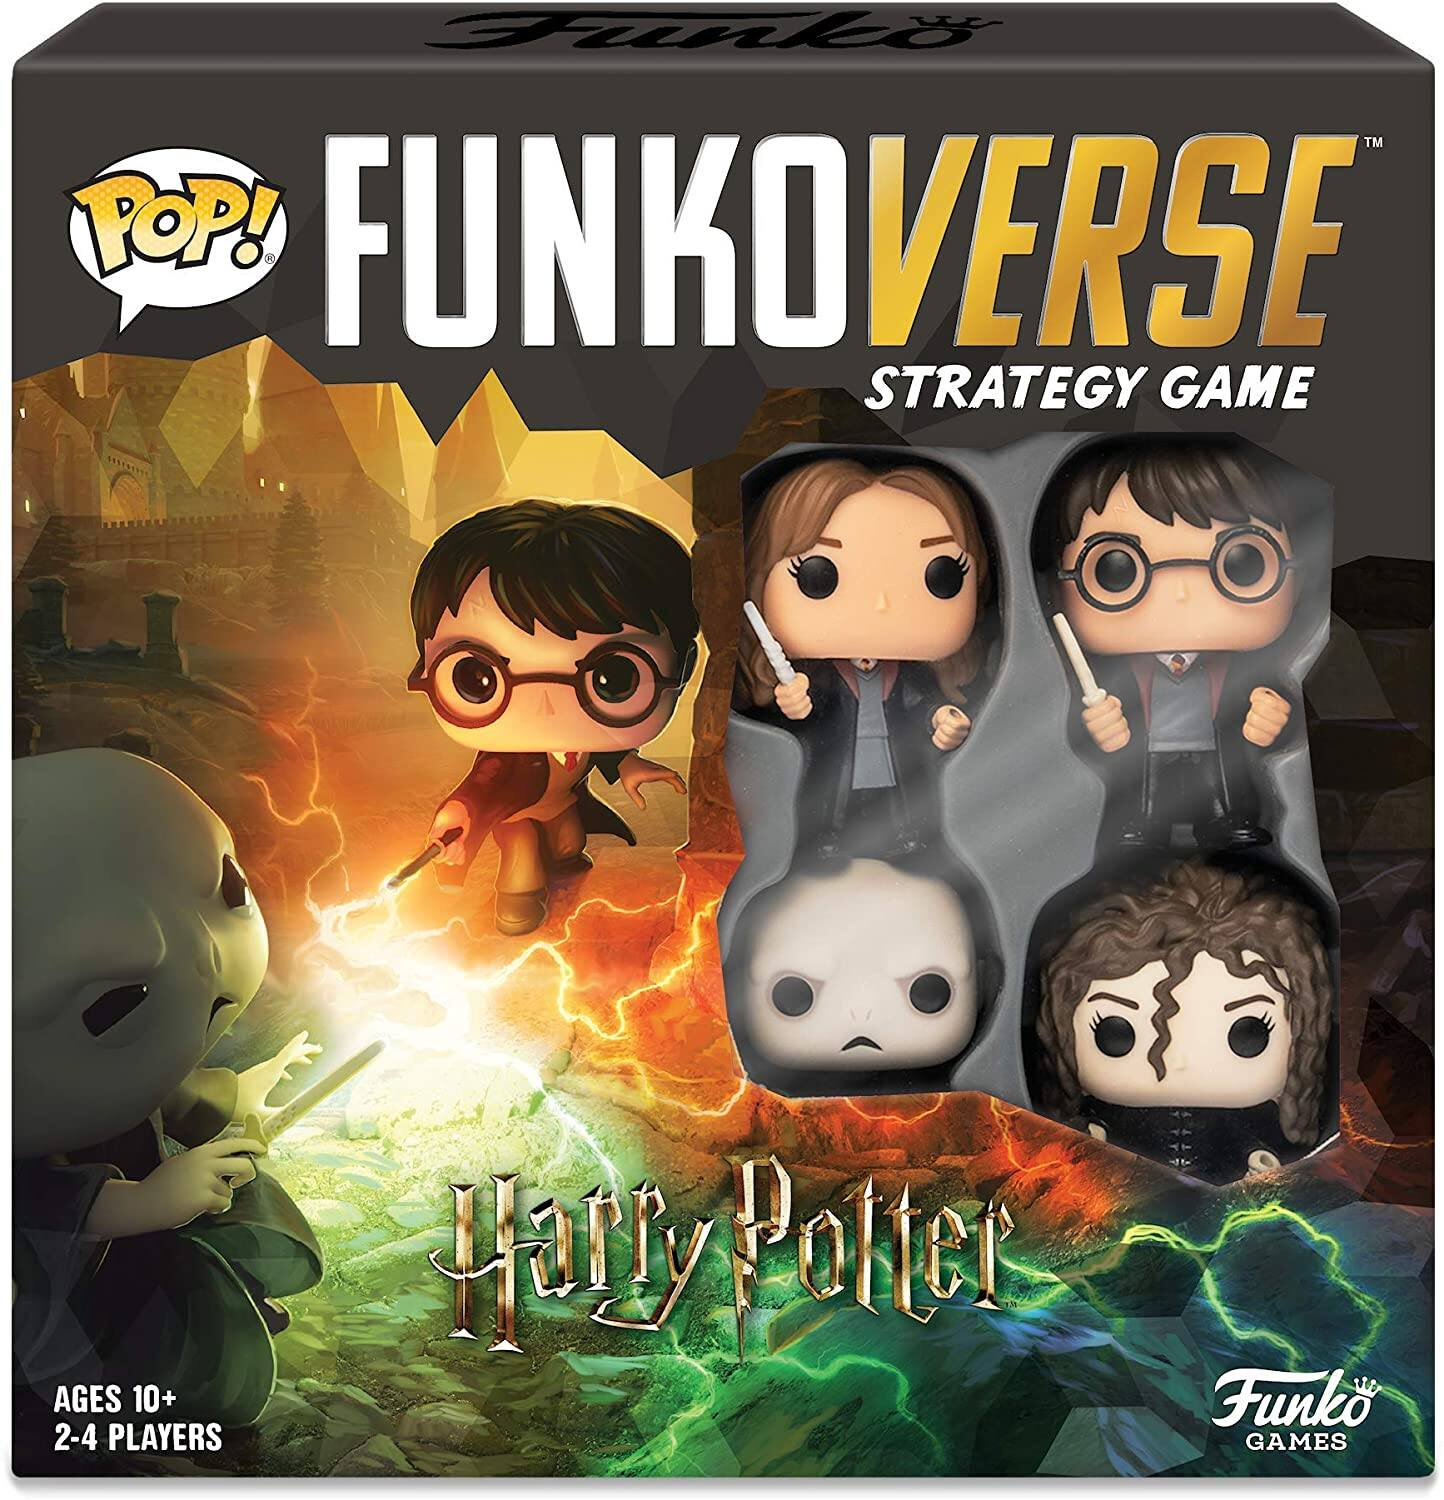 Funko Pop! - Funkoverse Strategy Game: Harry Potter #100 (Base Set)